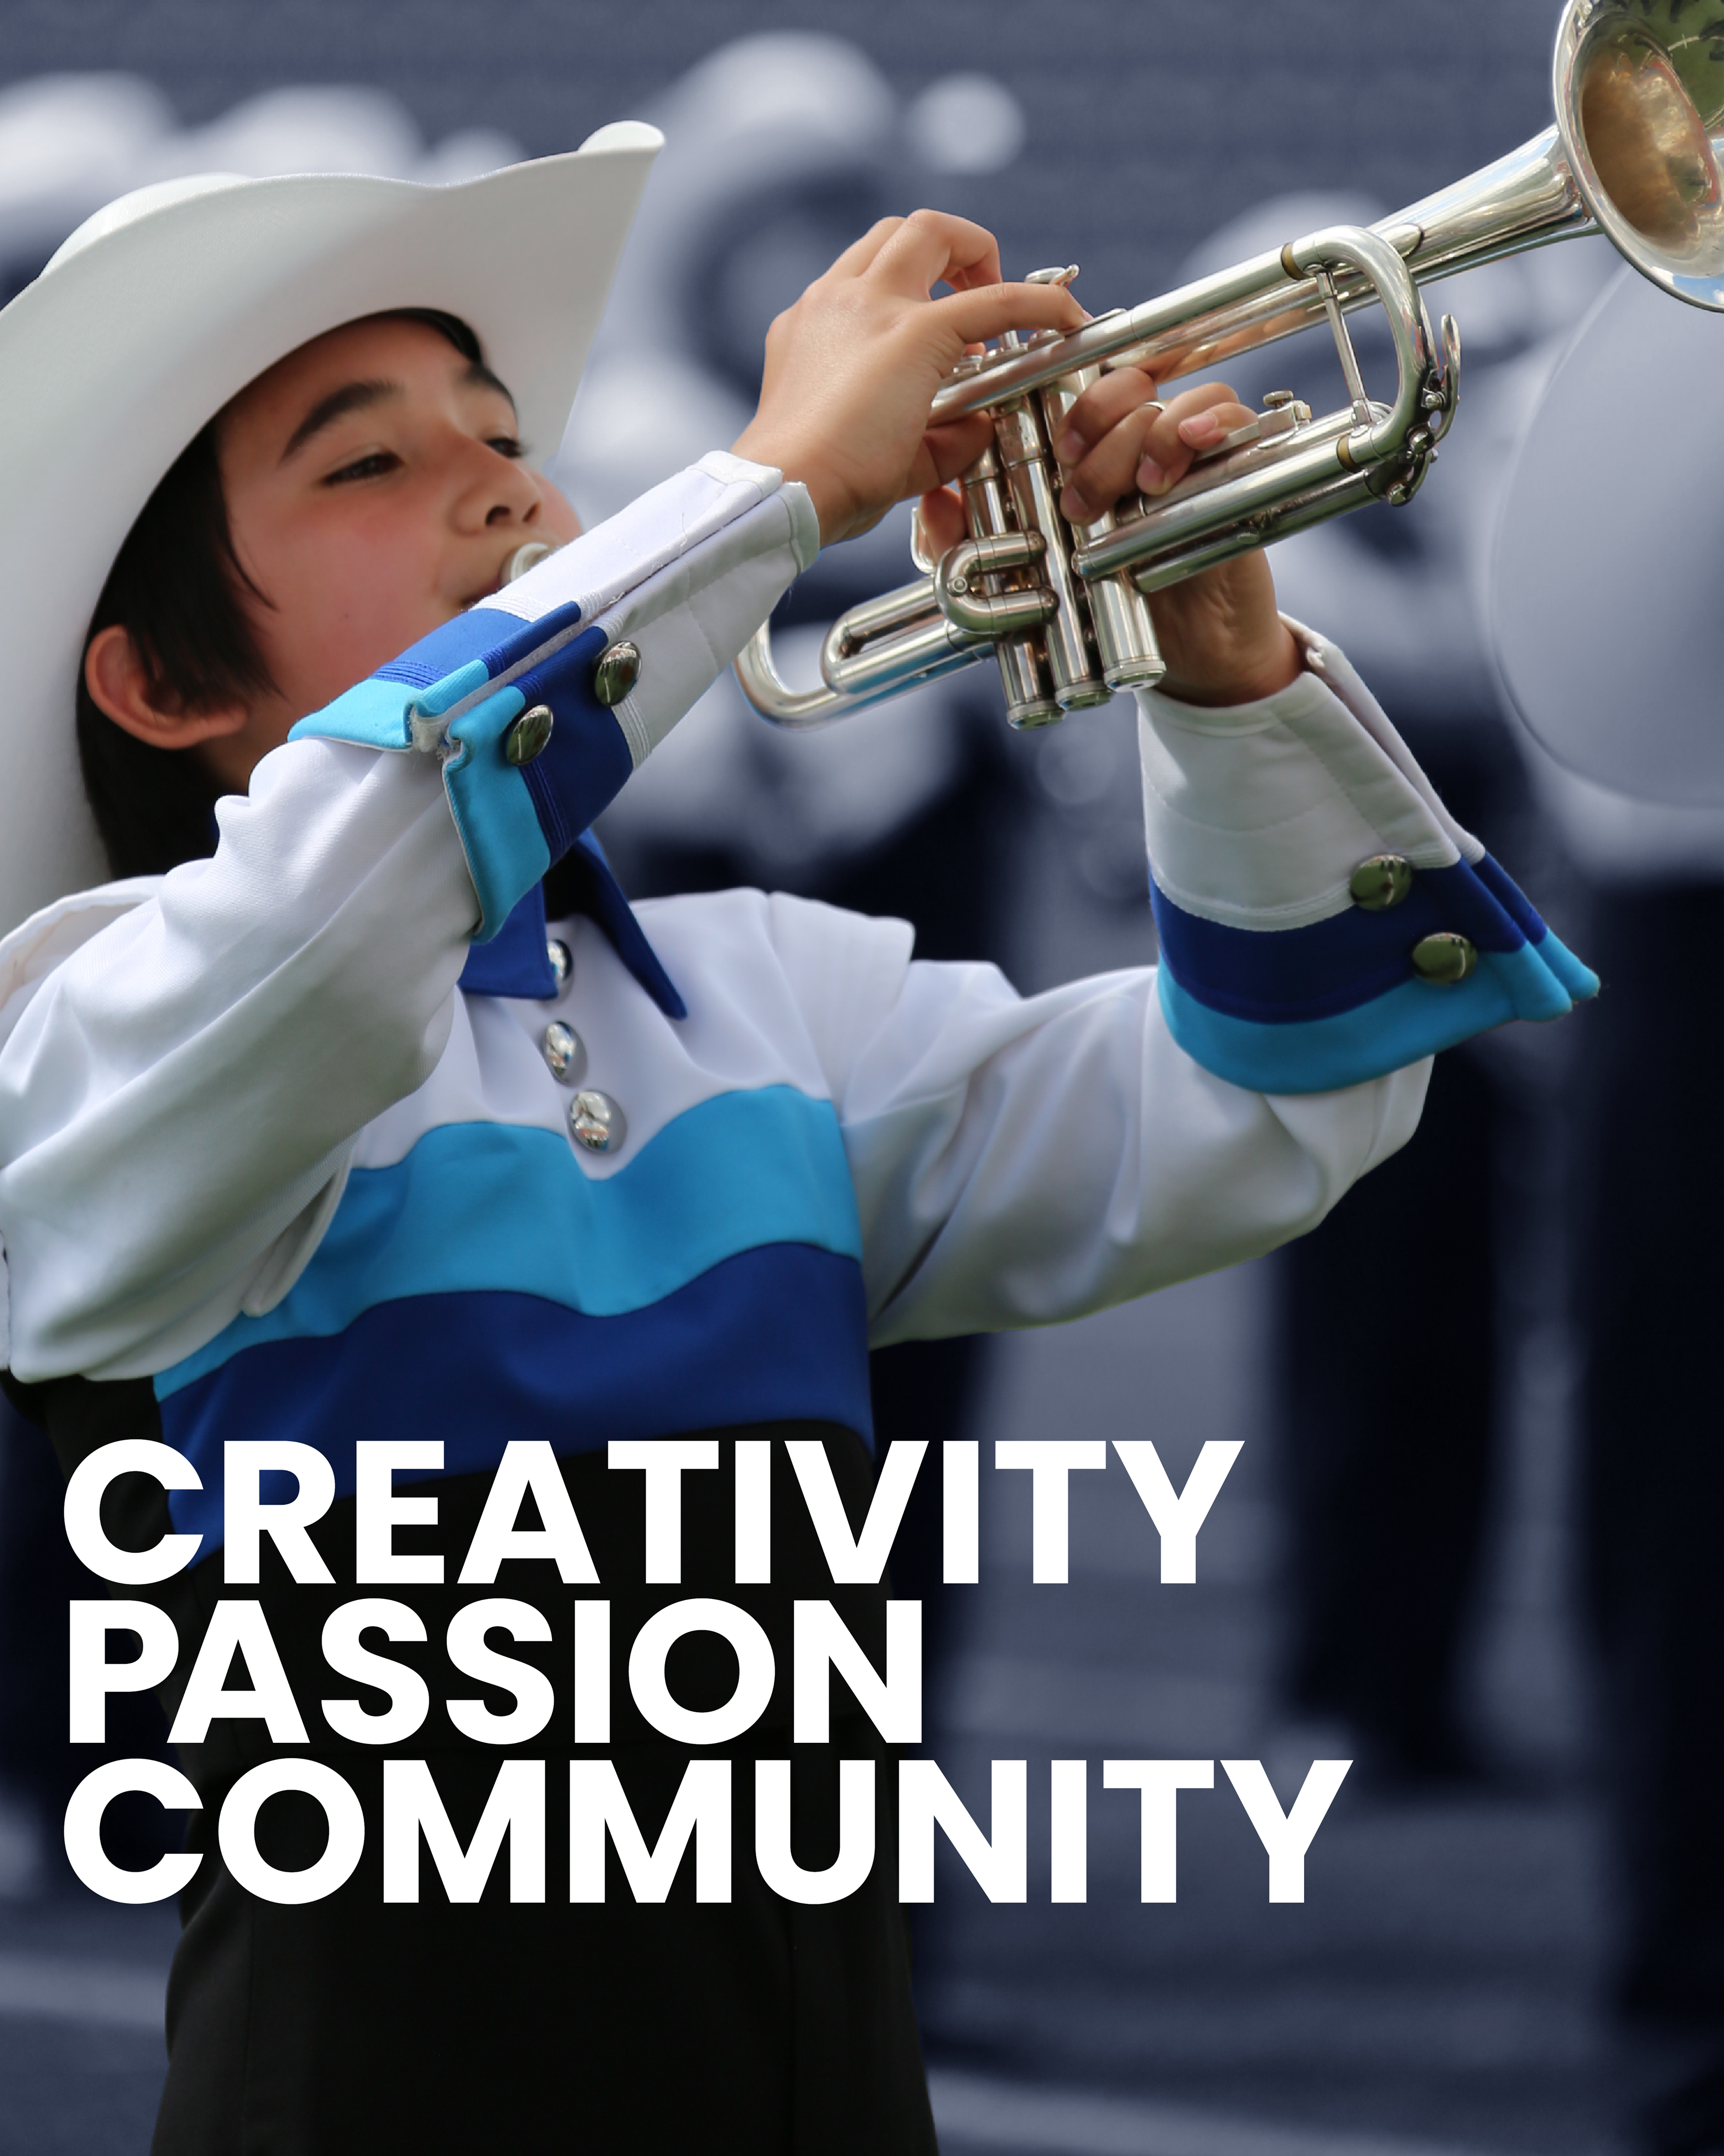 Creativity, Passion, and Community